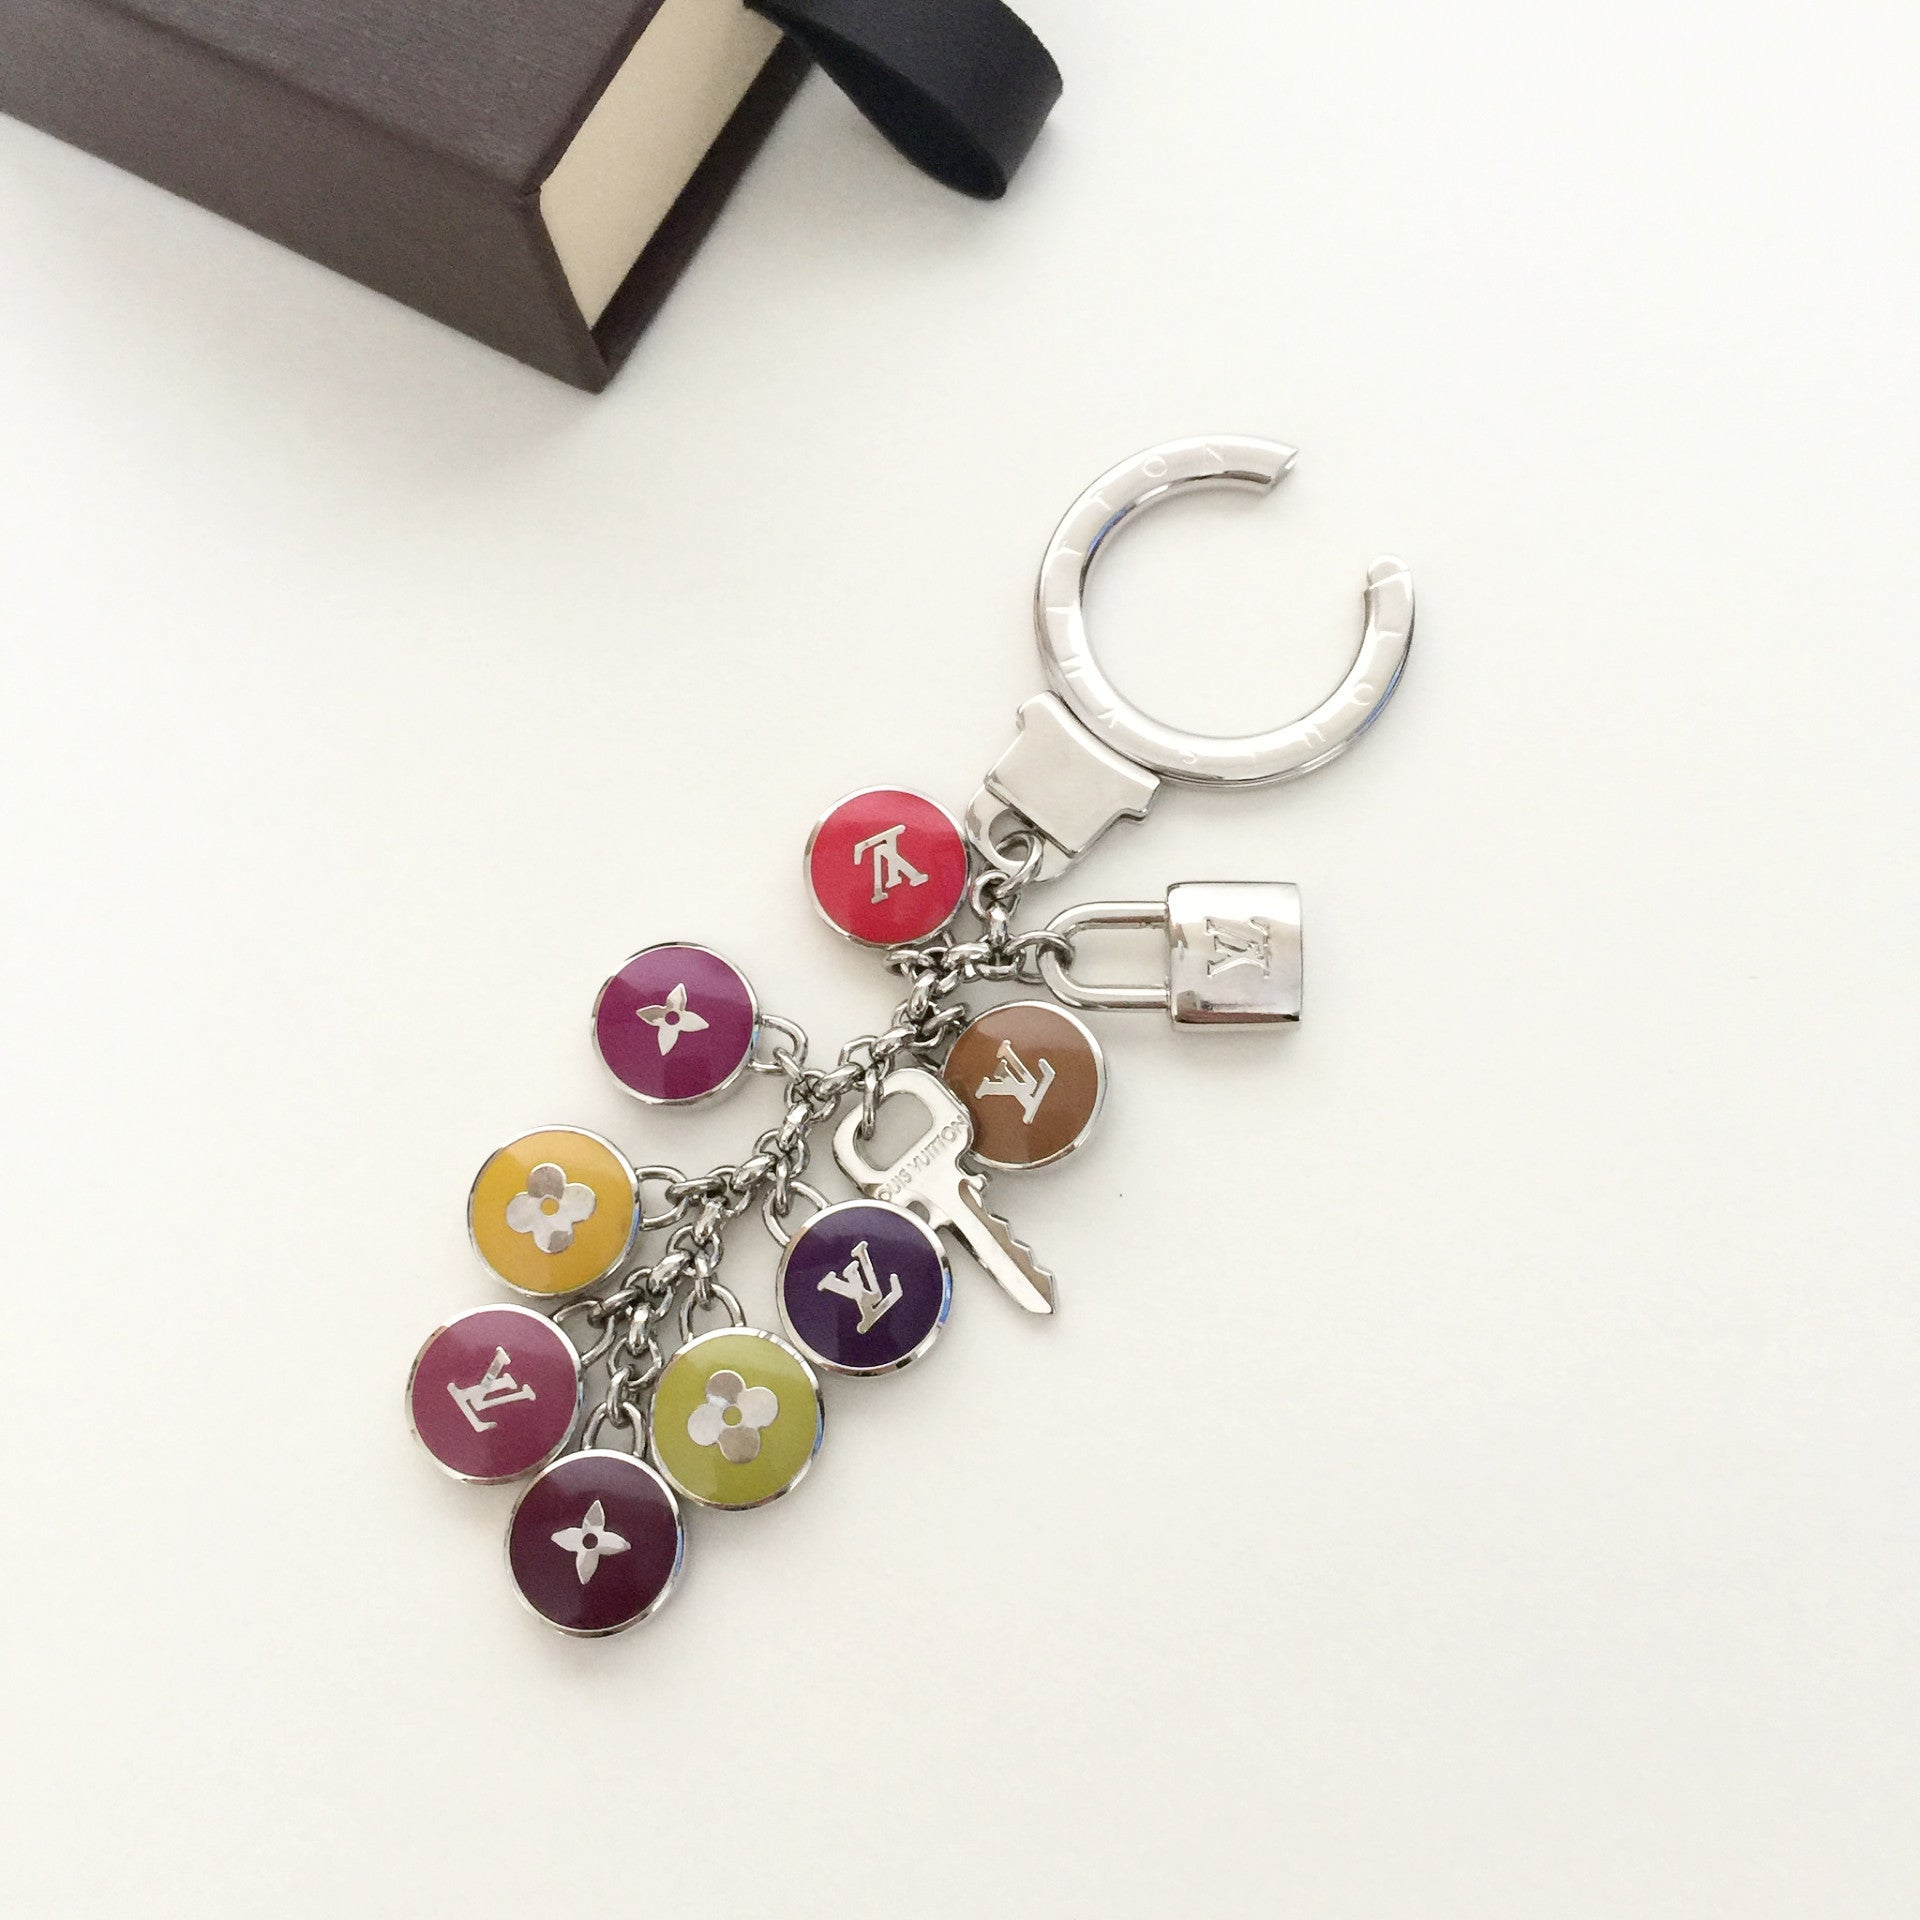 Authentic LOUIS VUITTON Key Bag Charm